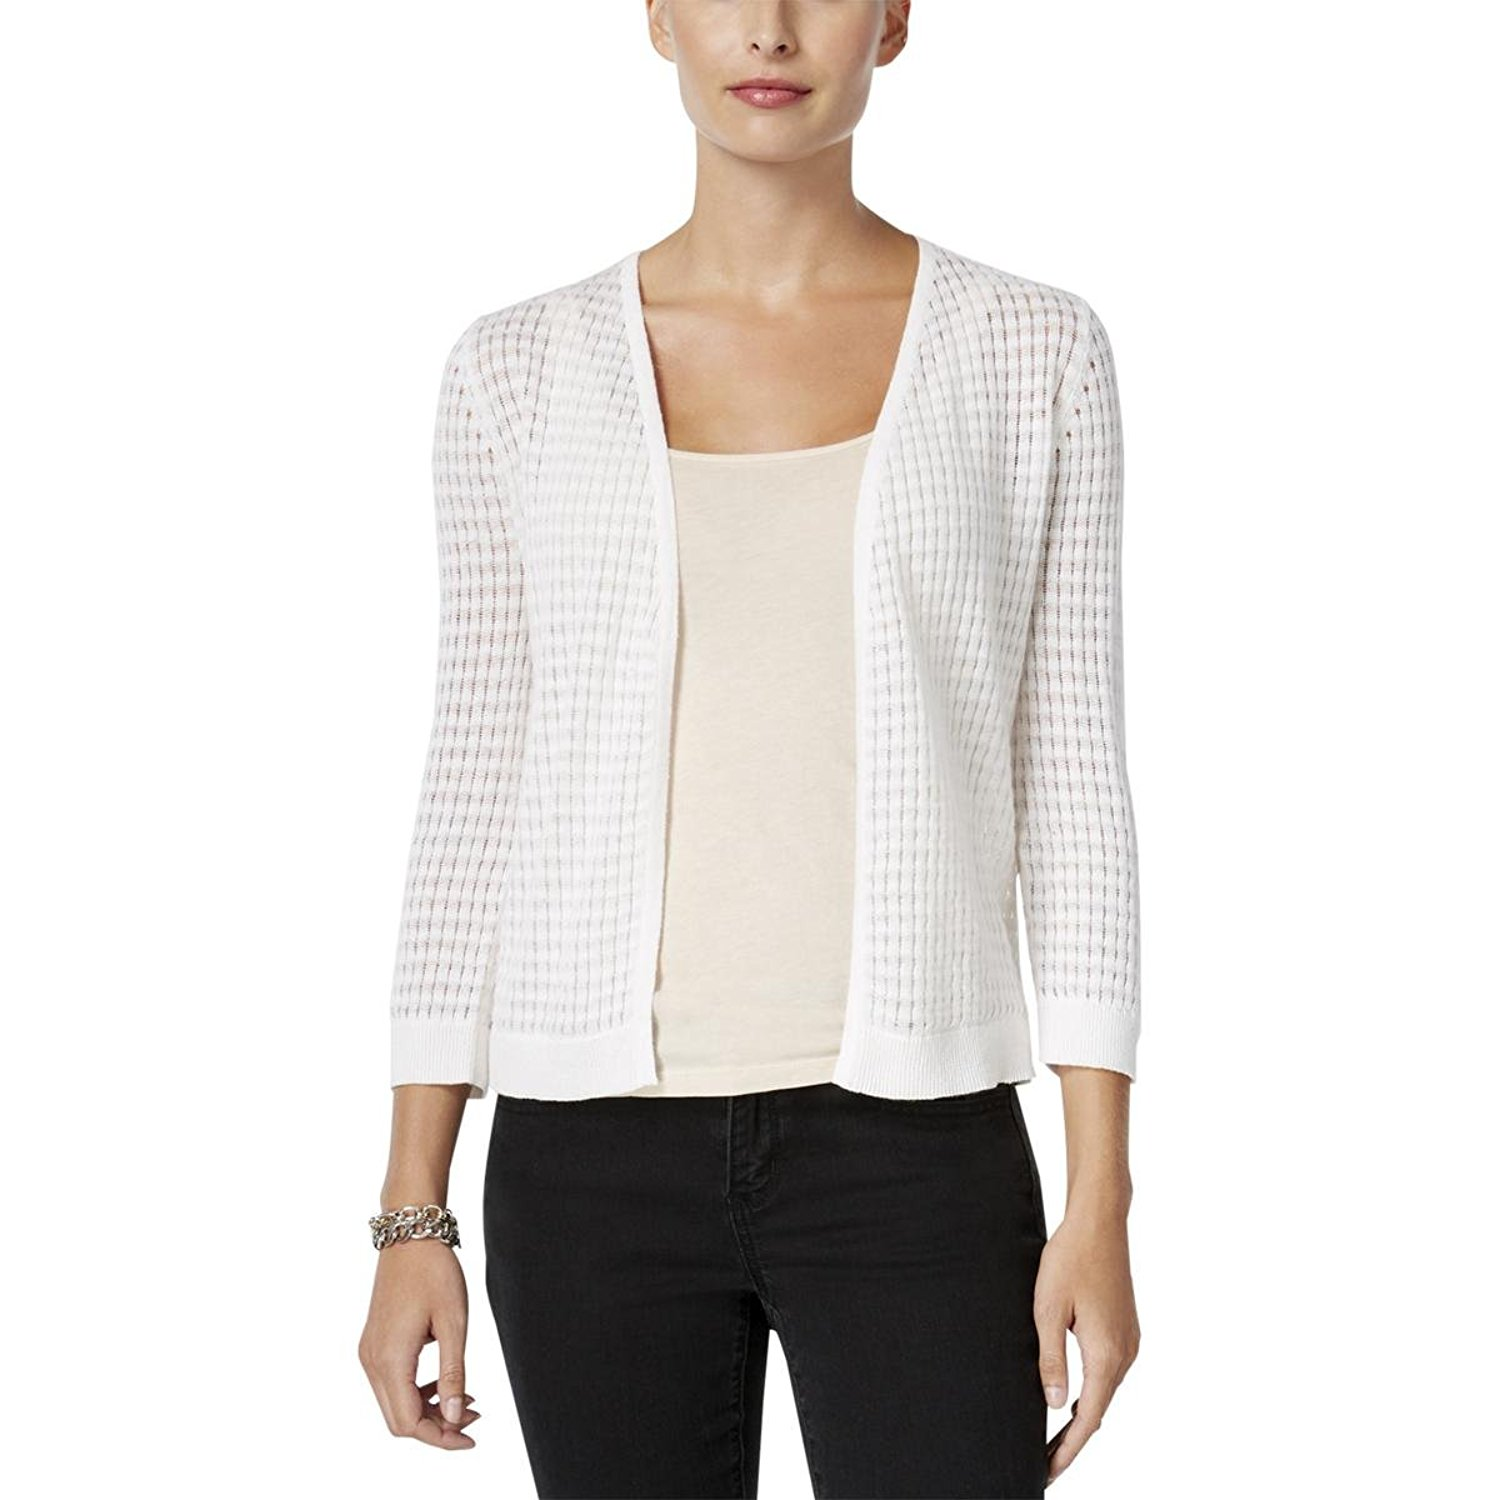 97aefd82d4c Get Quotations · Charter Club Womens Pointelle Ribbed Trim Cardigan Sweater